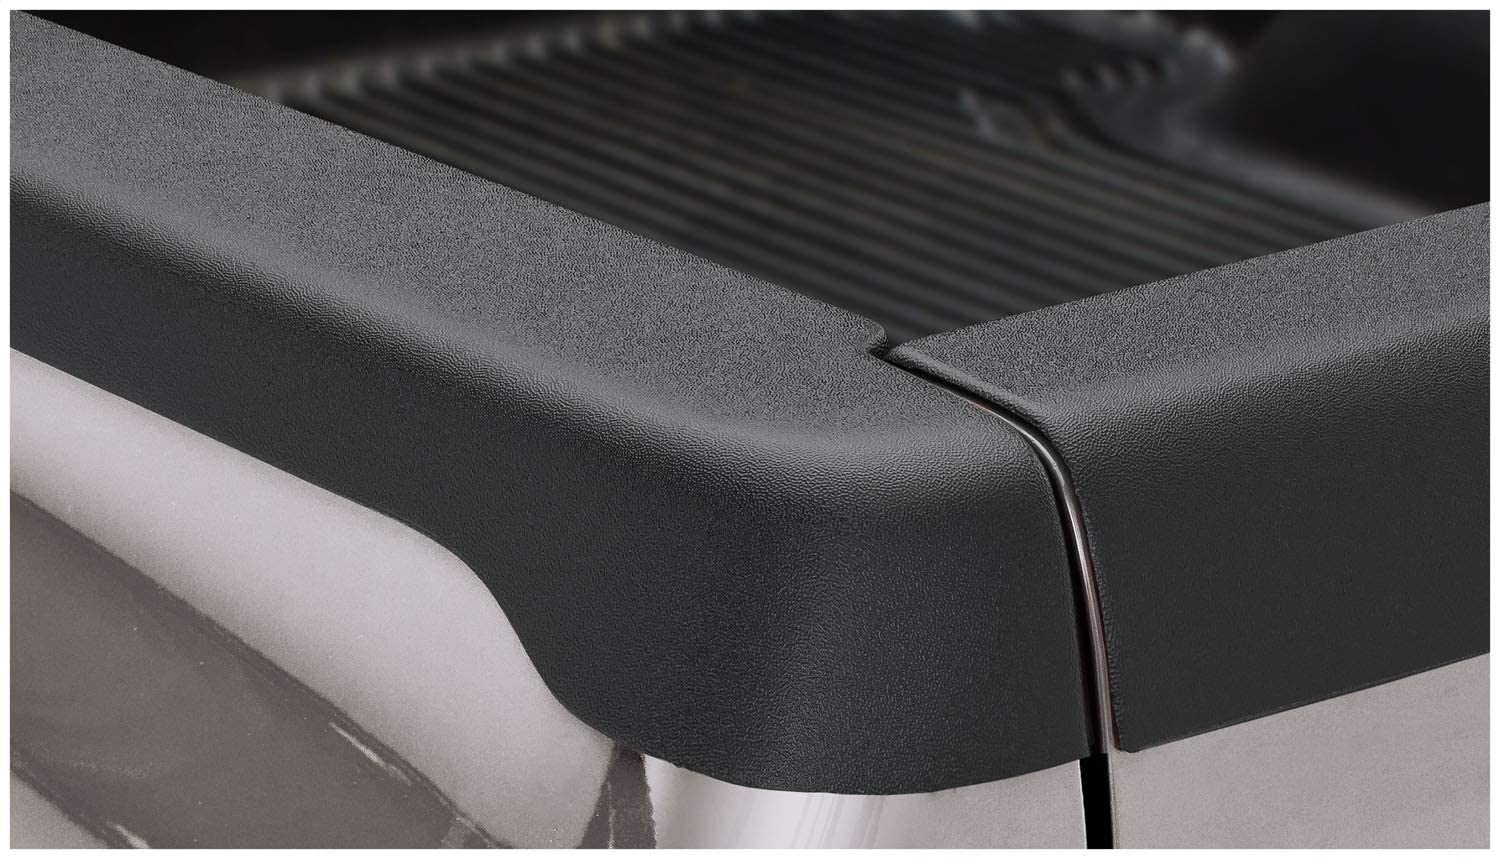 Compatible With/Replacement For Compatible With/Replacement For Bushwacker (B/W-RBB-112) Ultimate SmoothBack Bed Rail Cap - Fits Dakota 2010-2011